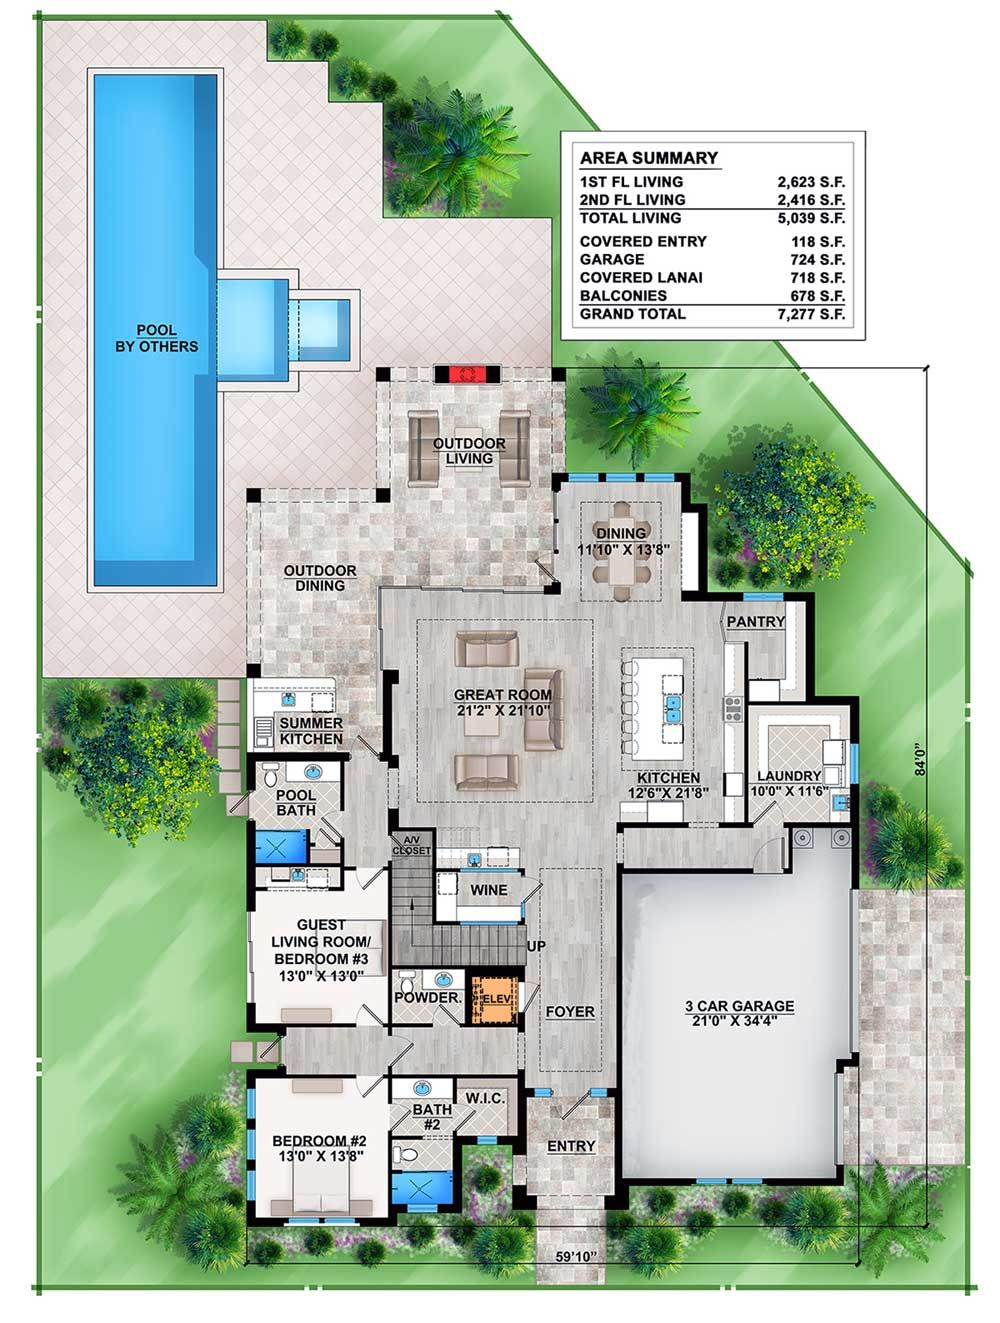 Good Kitchen And Laundry Layout.